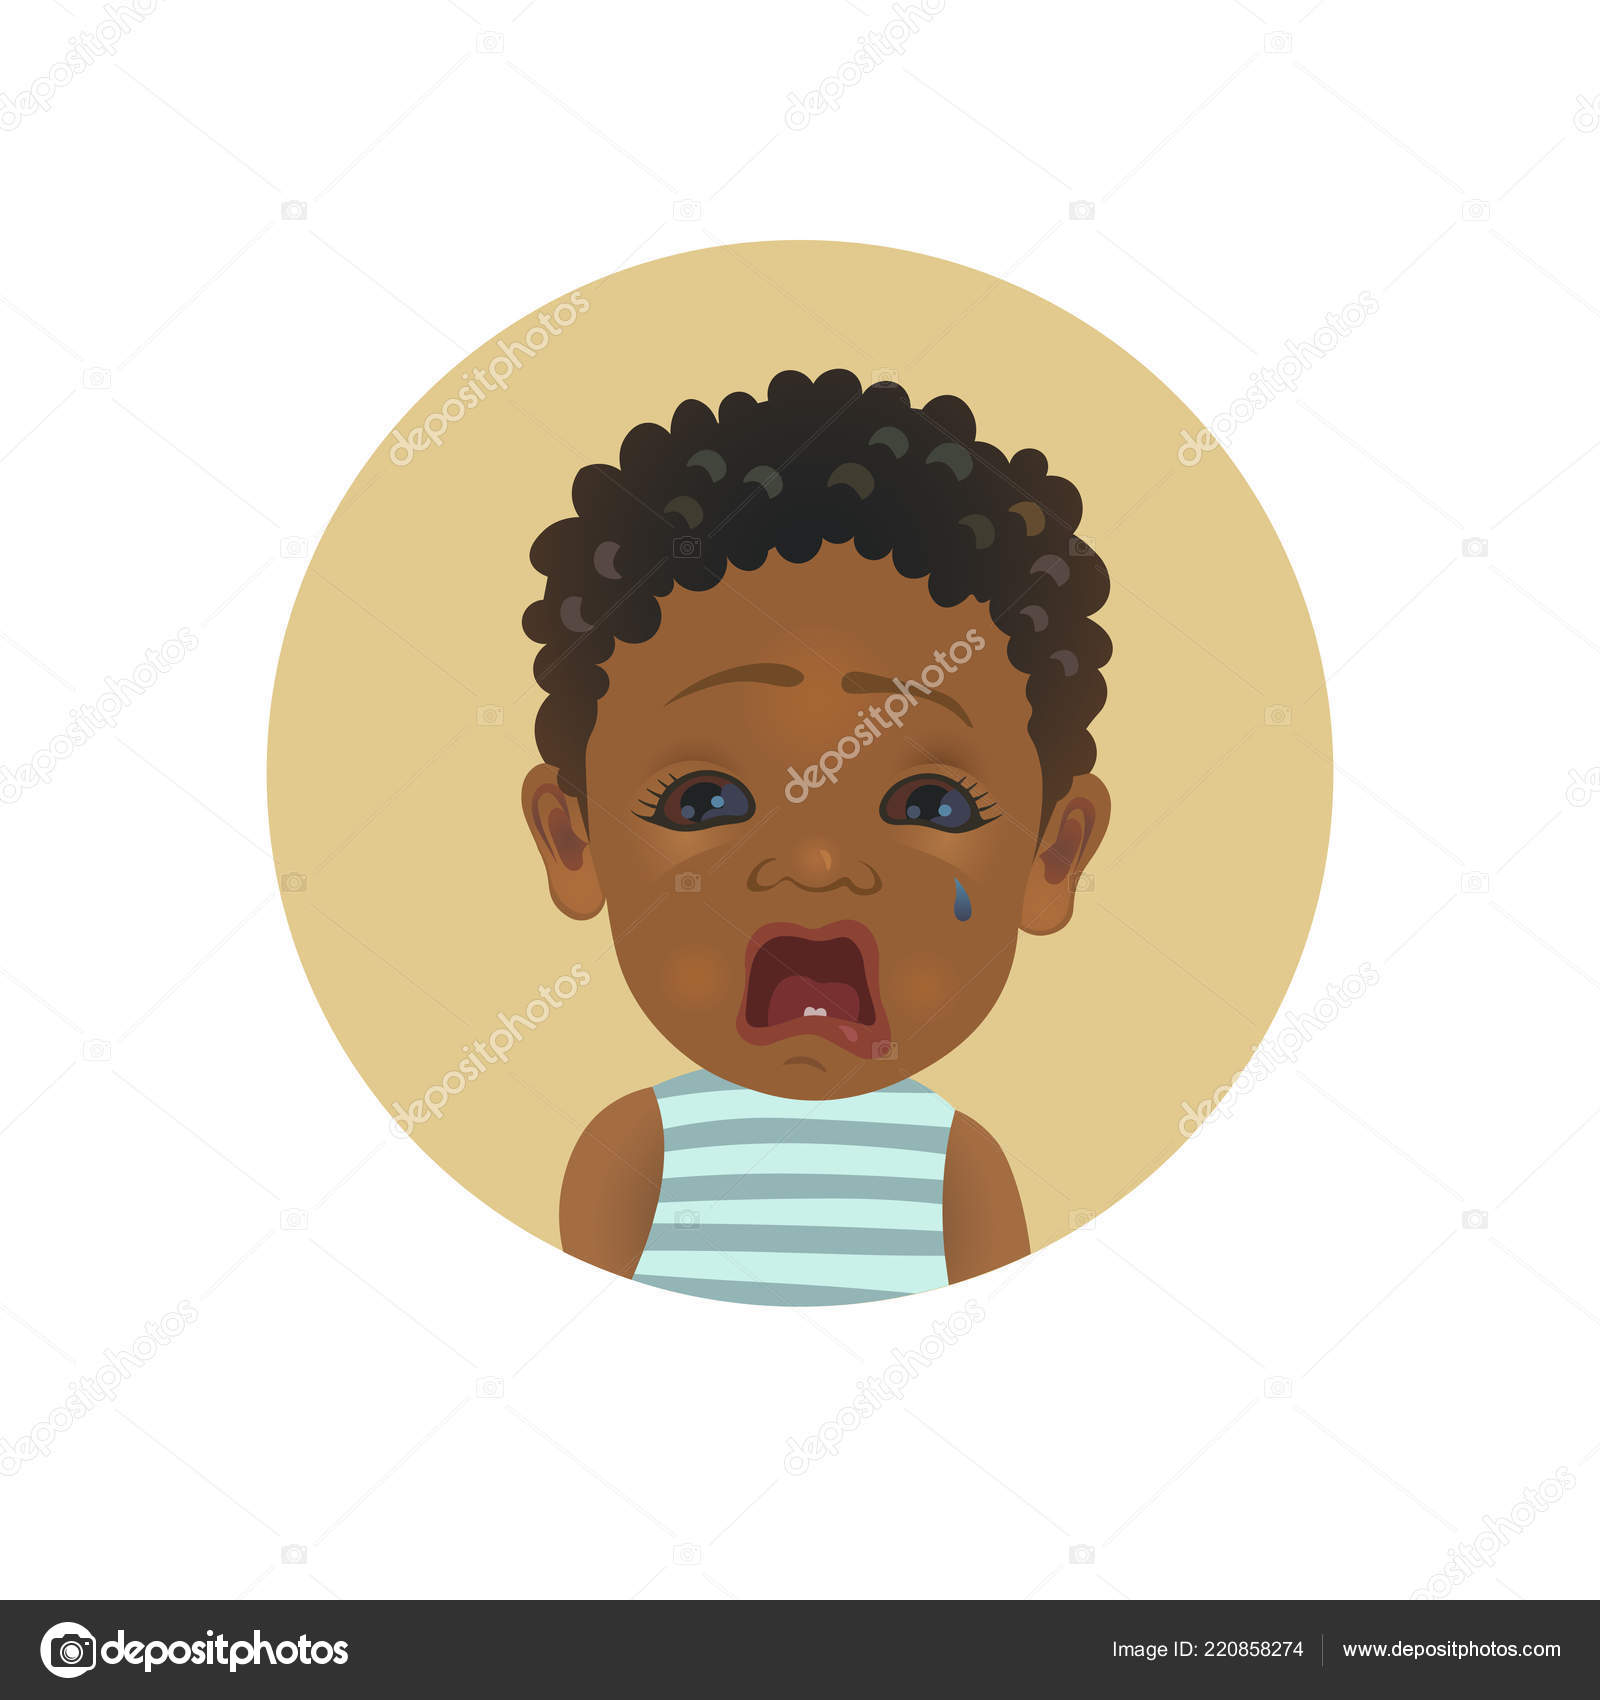 Cute Afro American crying baby emoticon. Tearful African